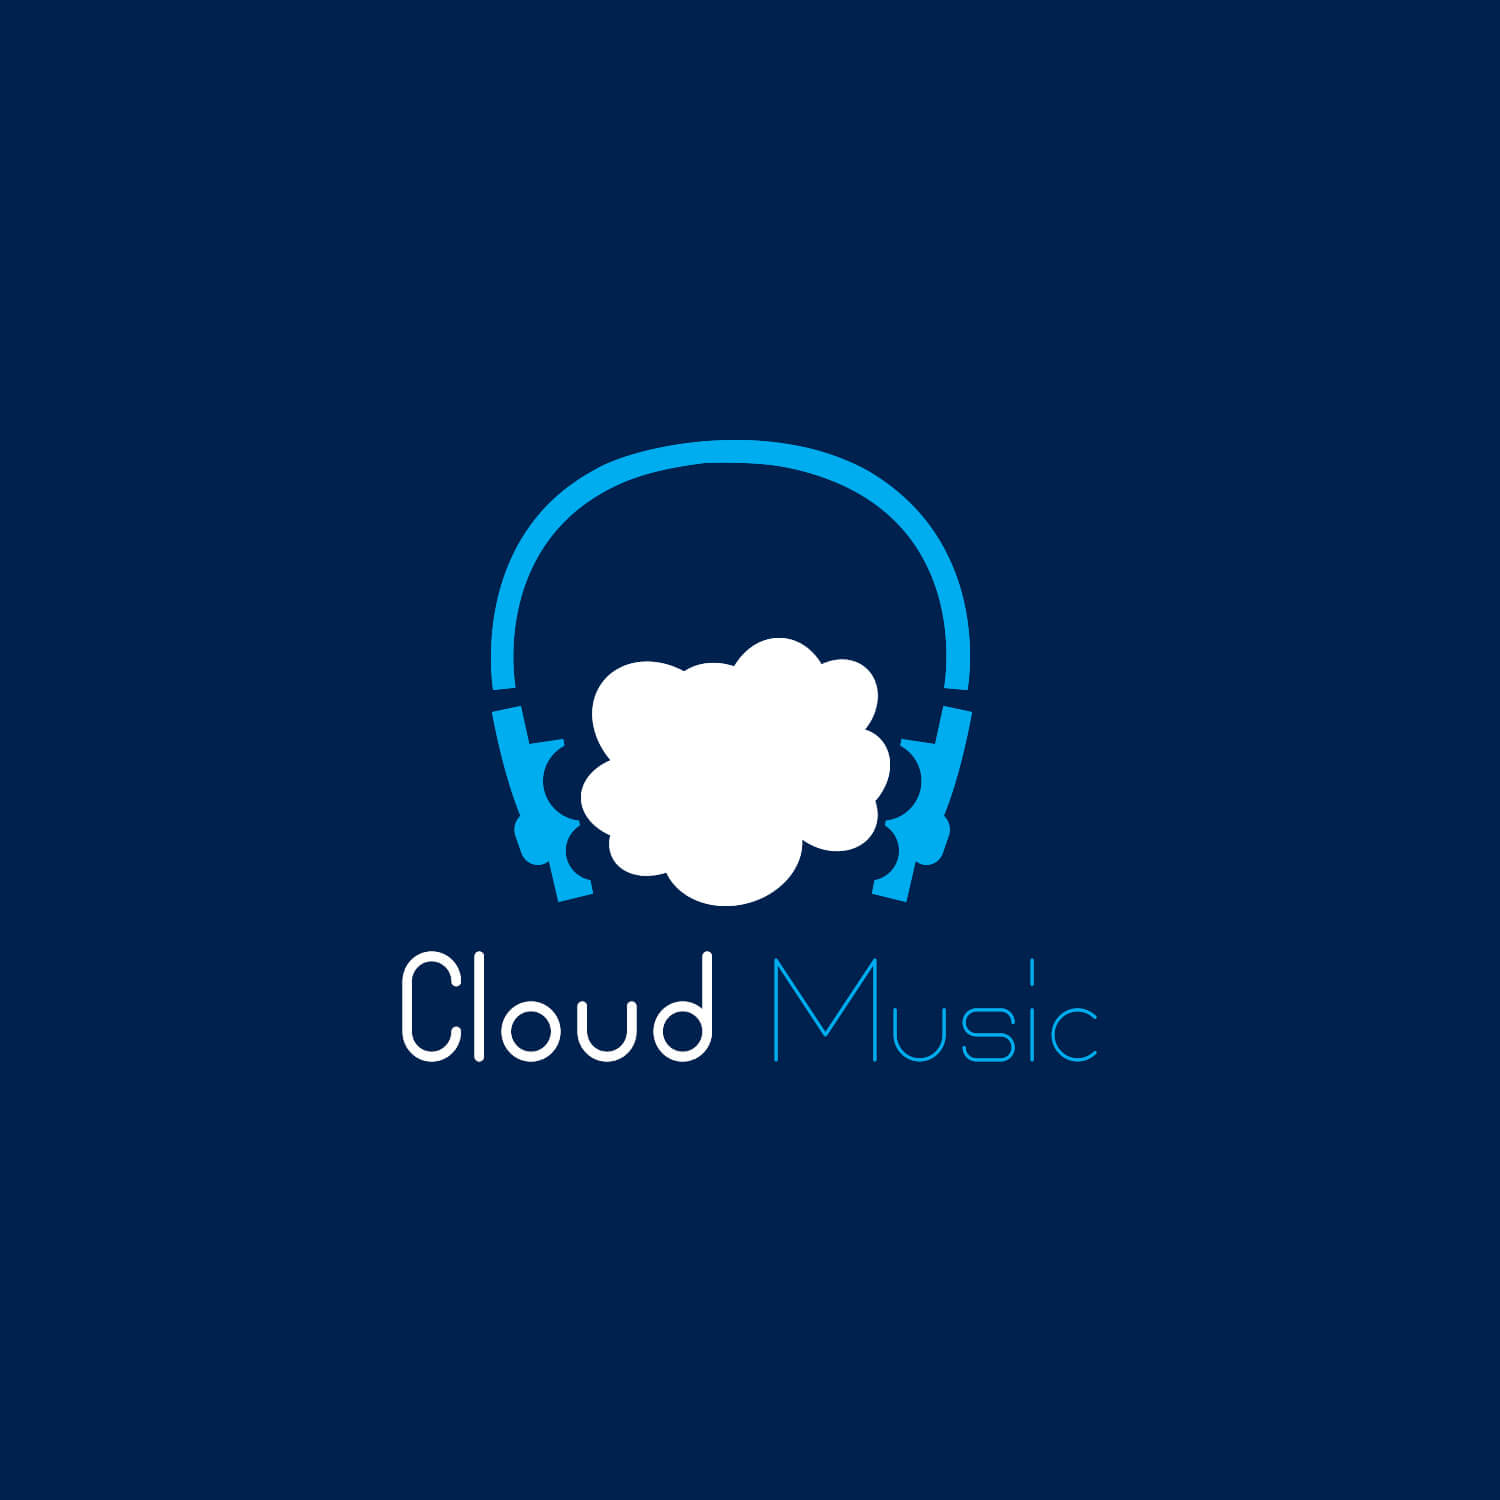 cloud_music_large01